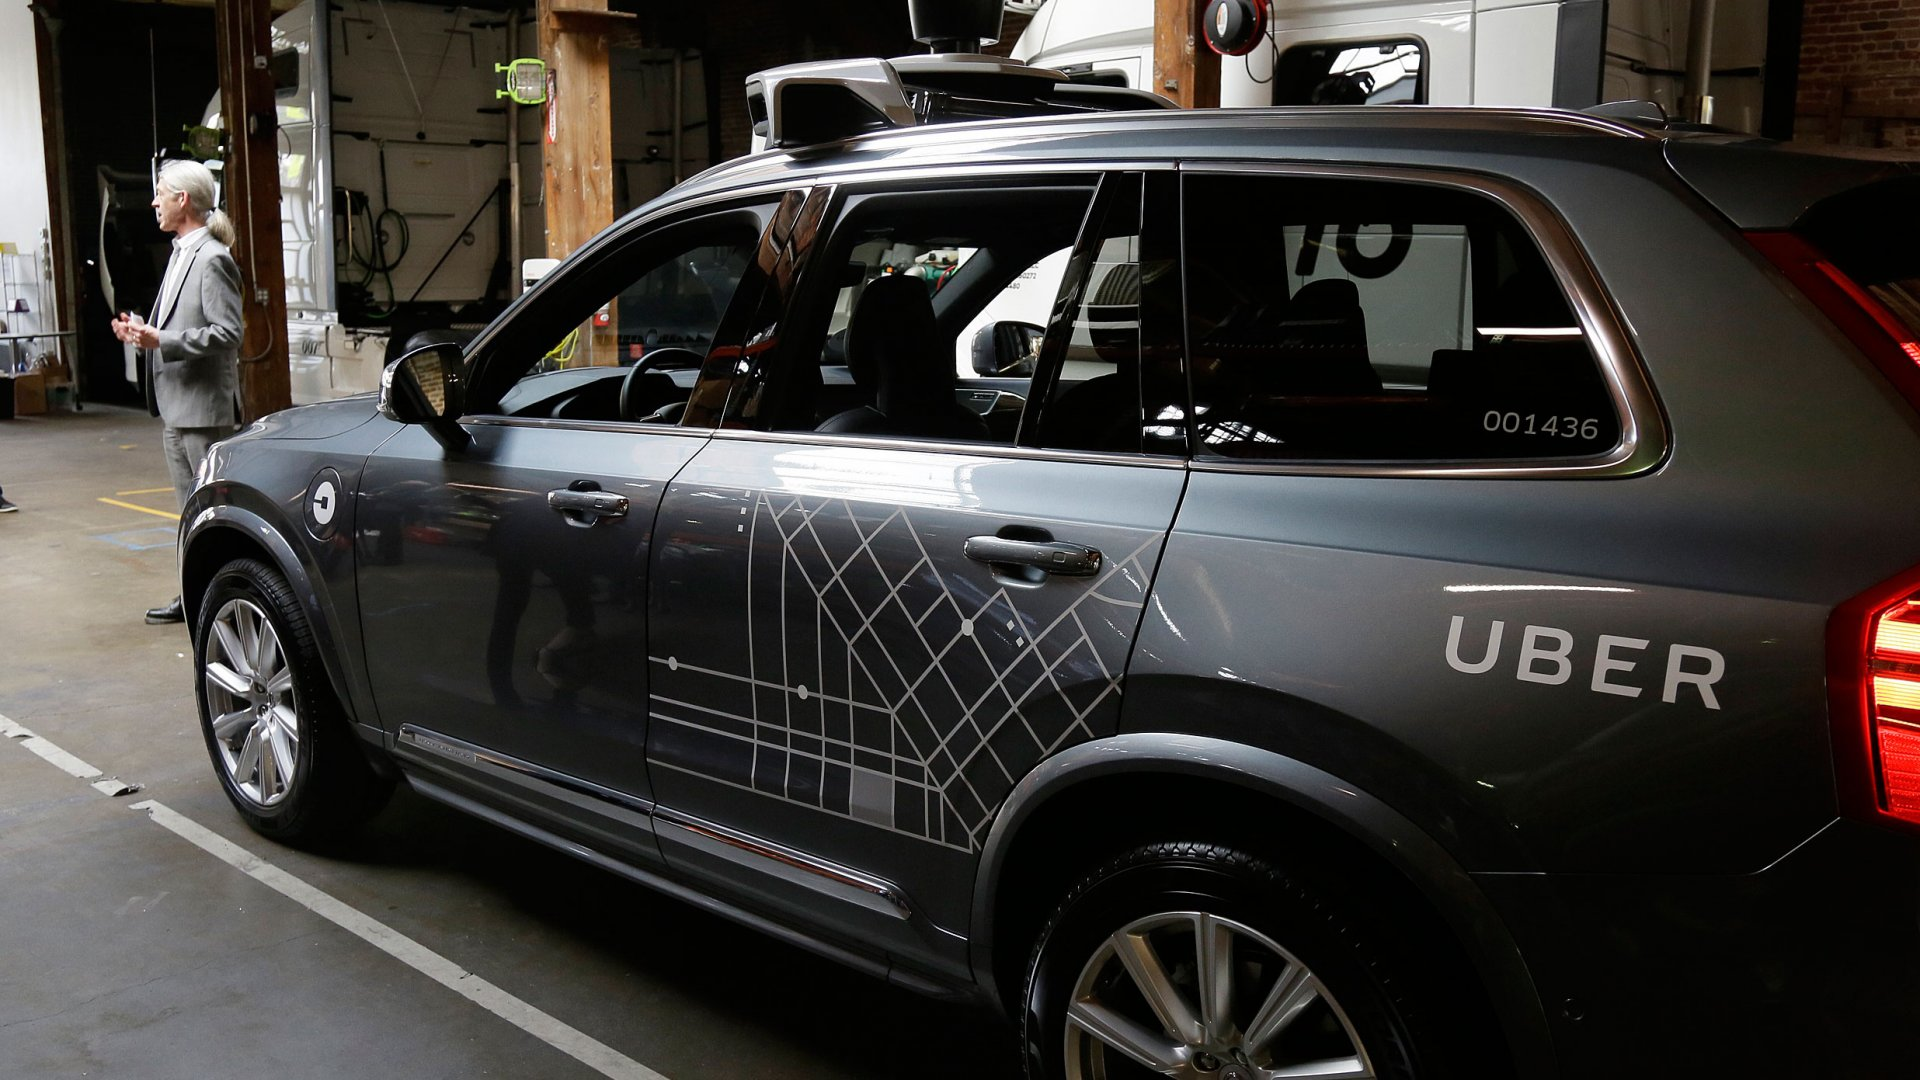 An Uber driverless car is displayed in a garage in San Francisco. Uber is bringing a small number of self-driving cars to its ride-hailing service in San Francisco - a move likely to both excite the city's tech-savvy population and spark a conflict with California regulators. The Wednesday, Dec. 14, launch in Uber's hometown expands a public pilot program the company started in Pittsburgh in September.